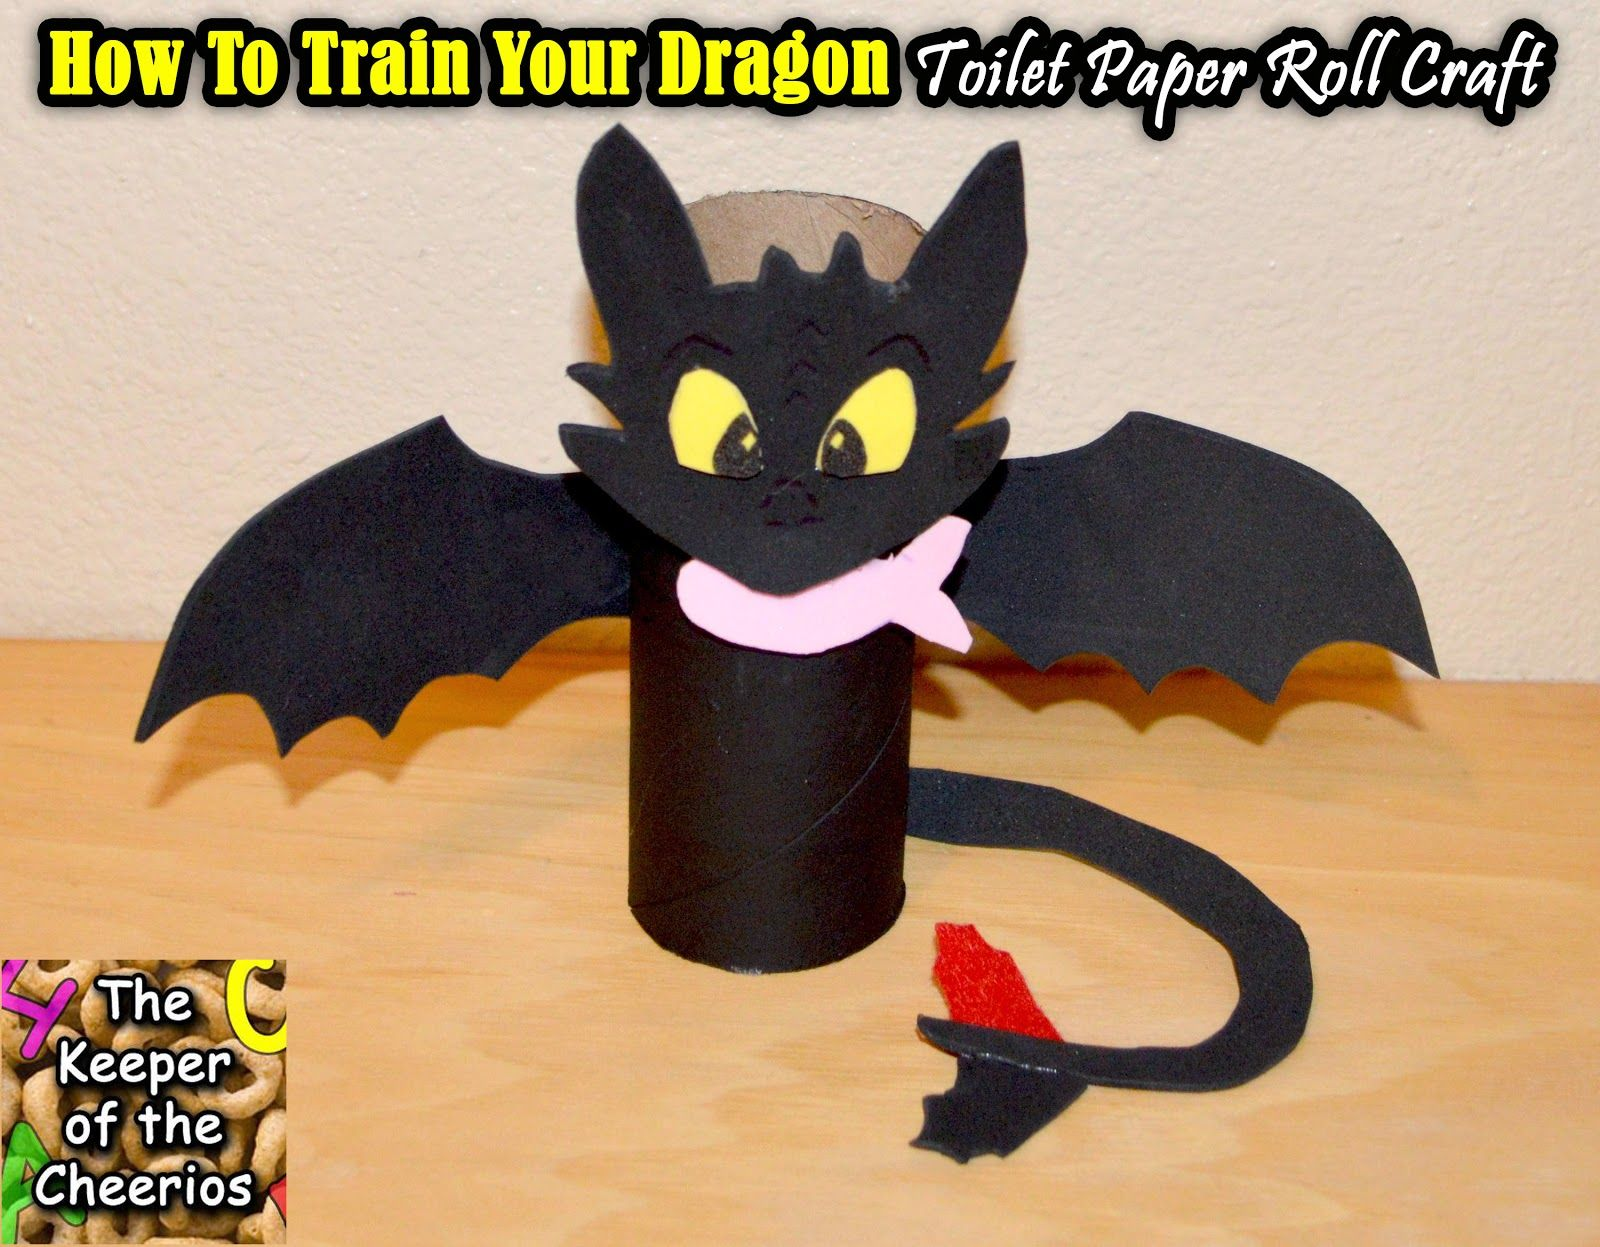 How To Train Your Dragon Toothless Toilet Paper Roll Craft The Keeper Of The Cheerios How Train Your Dragon How To Train Your Dragon Toilet Paper Roll Crafts